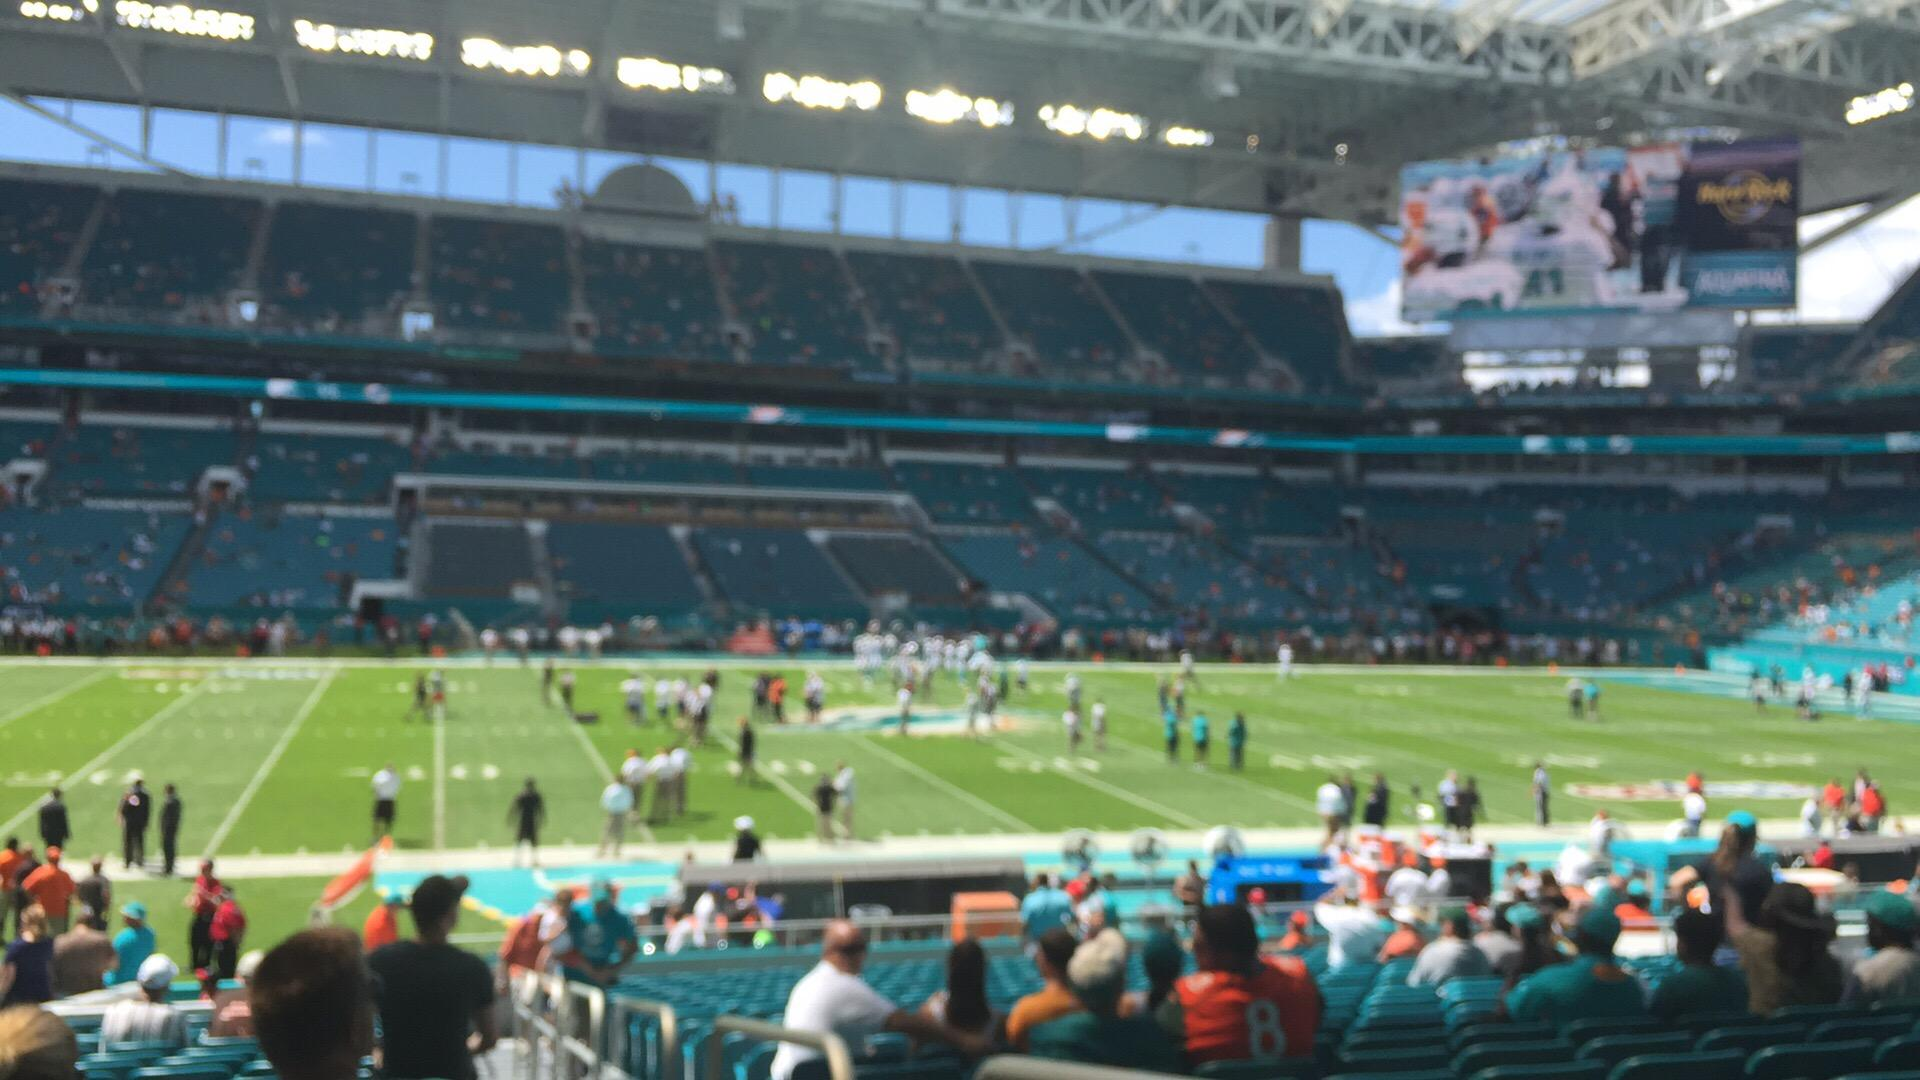 Hard Rock Stadium Section 120 Row 26 Seat 1,2